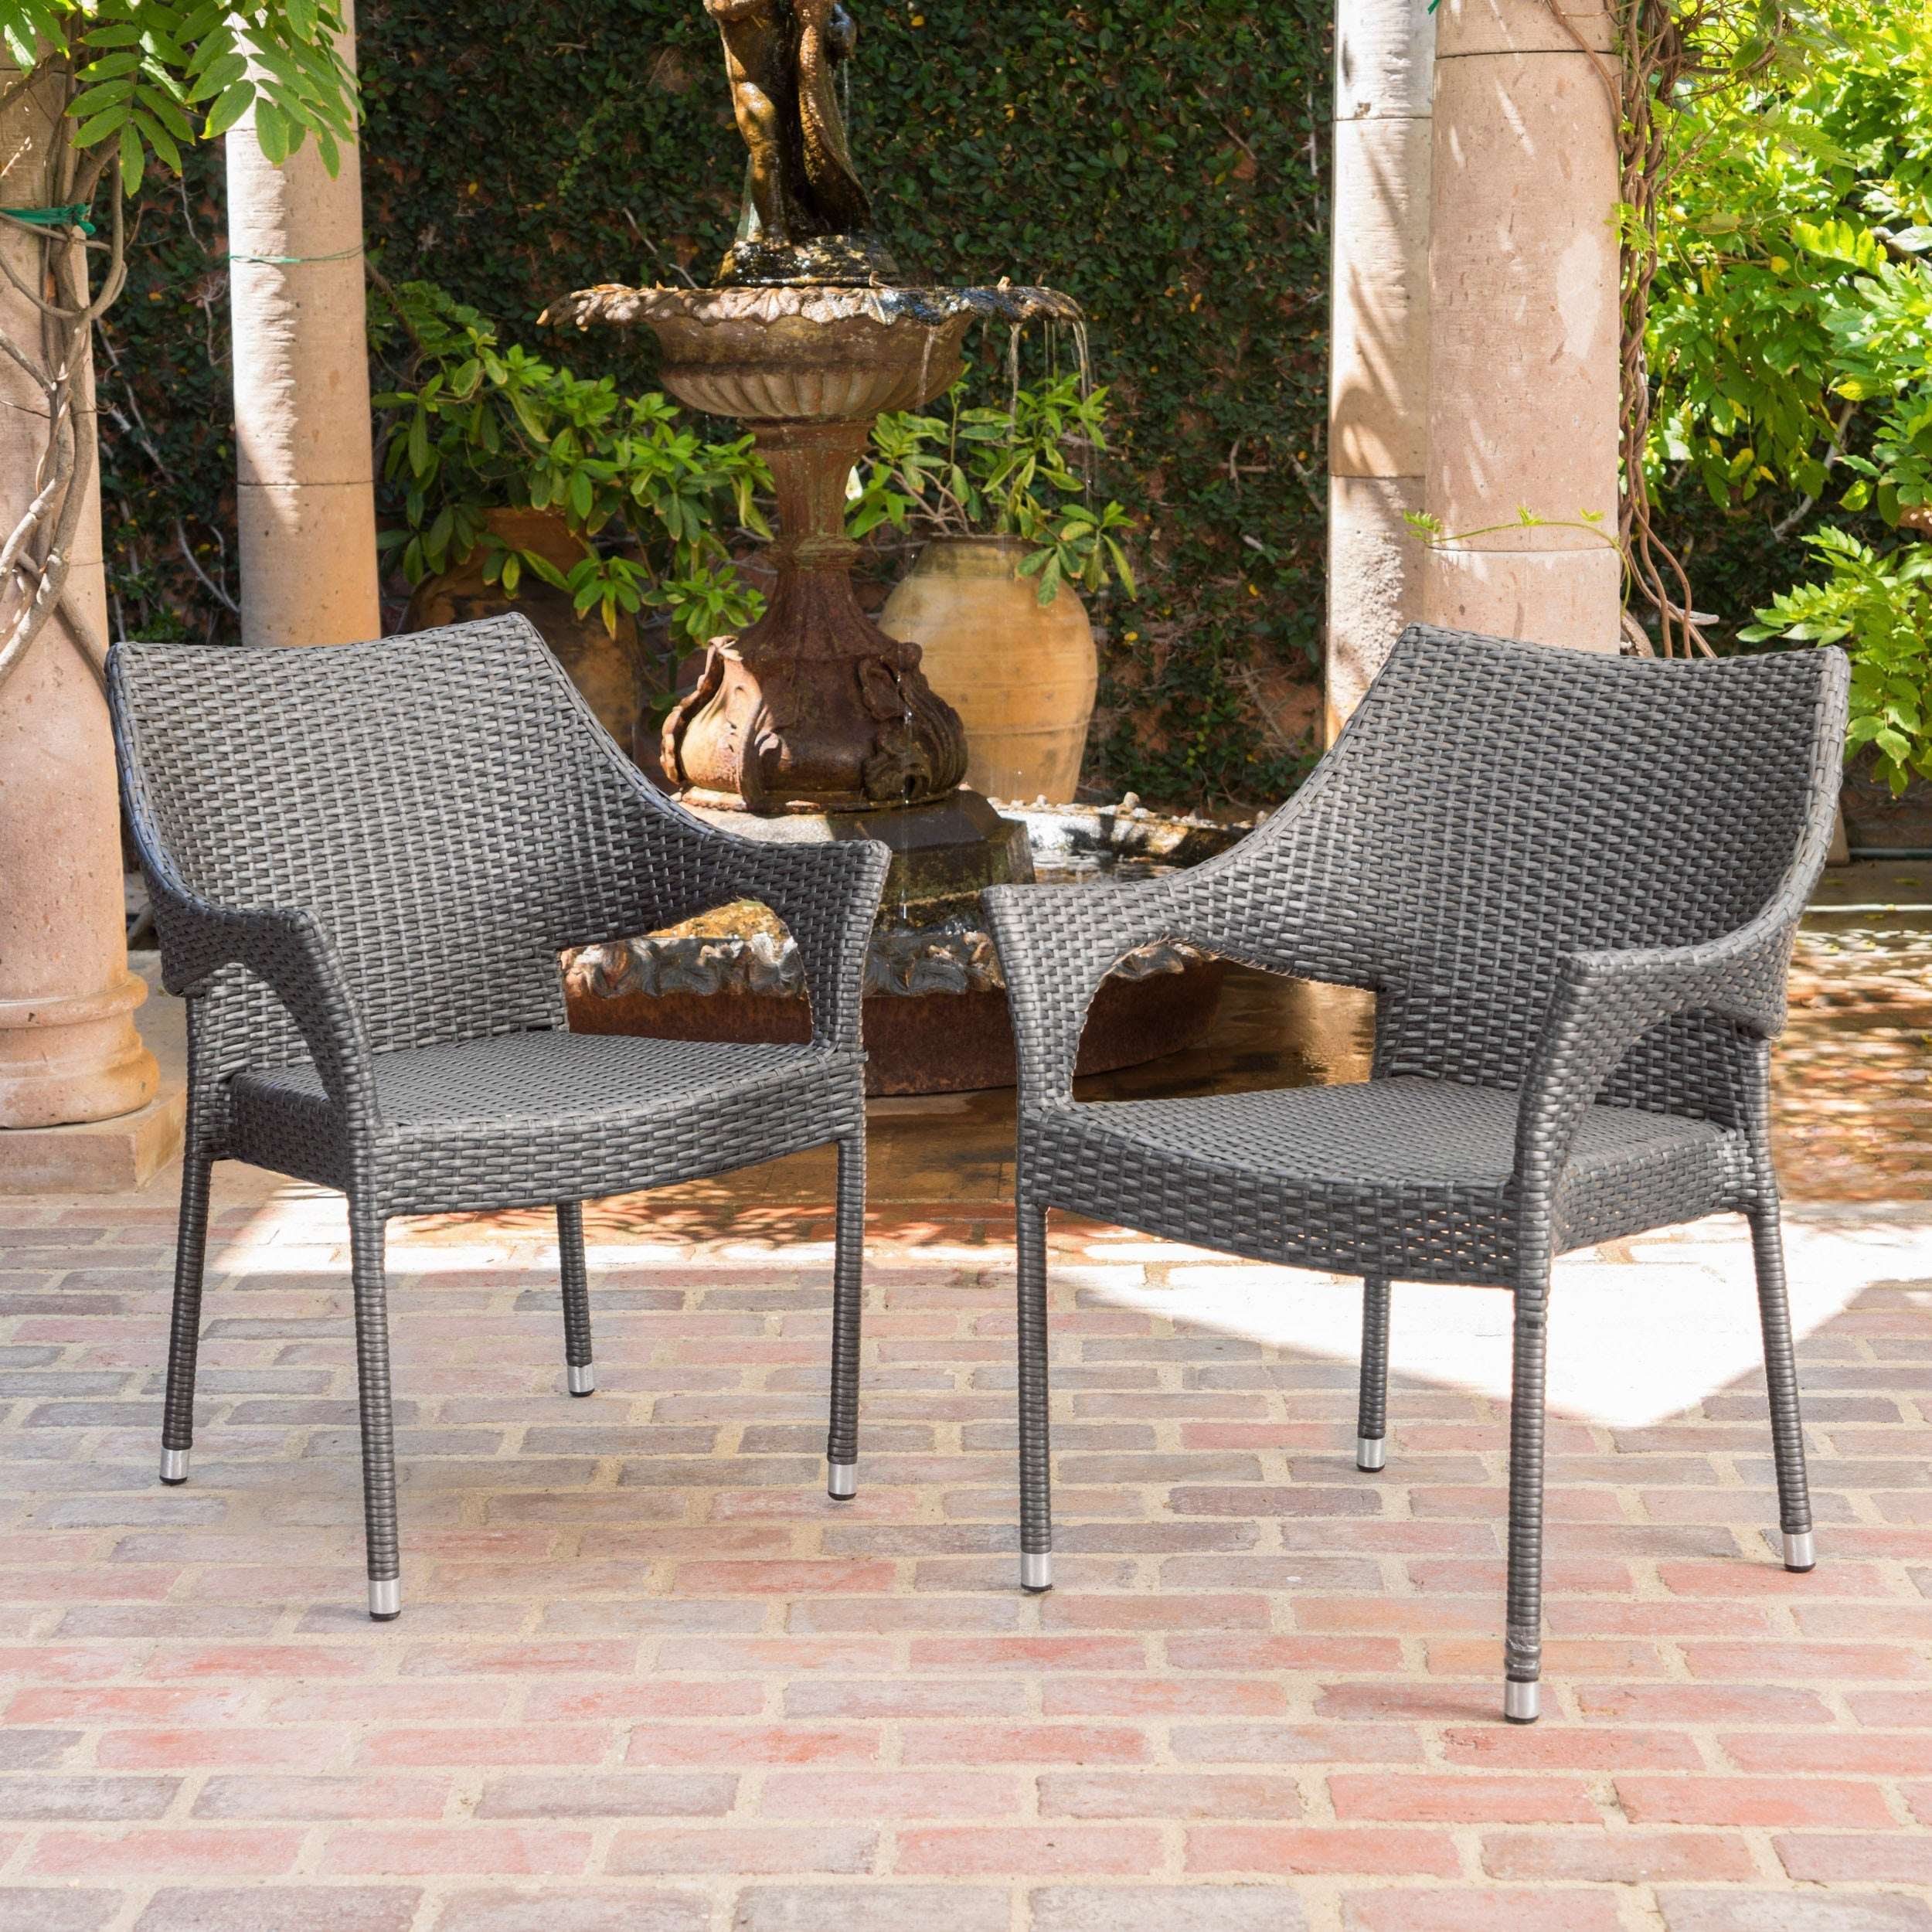 patio ideas modern chair outdoor in furniture design fantastic gallery chairs view wicker